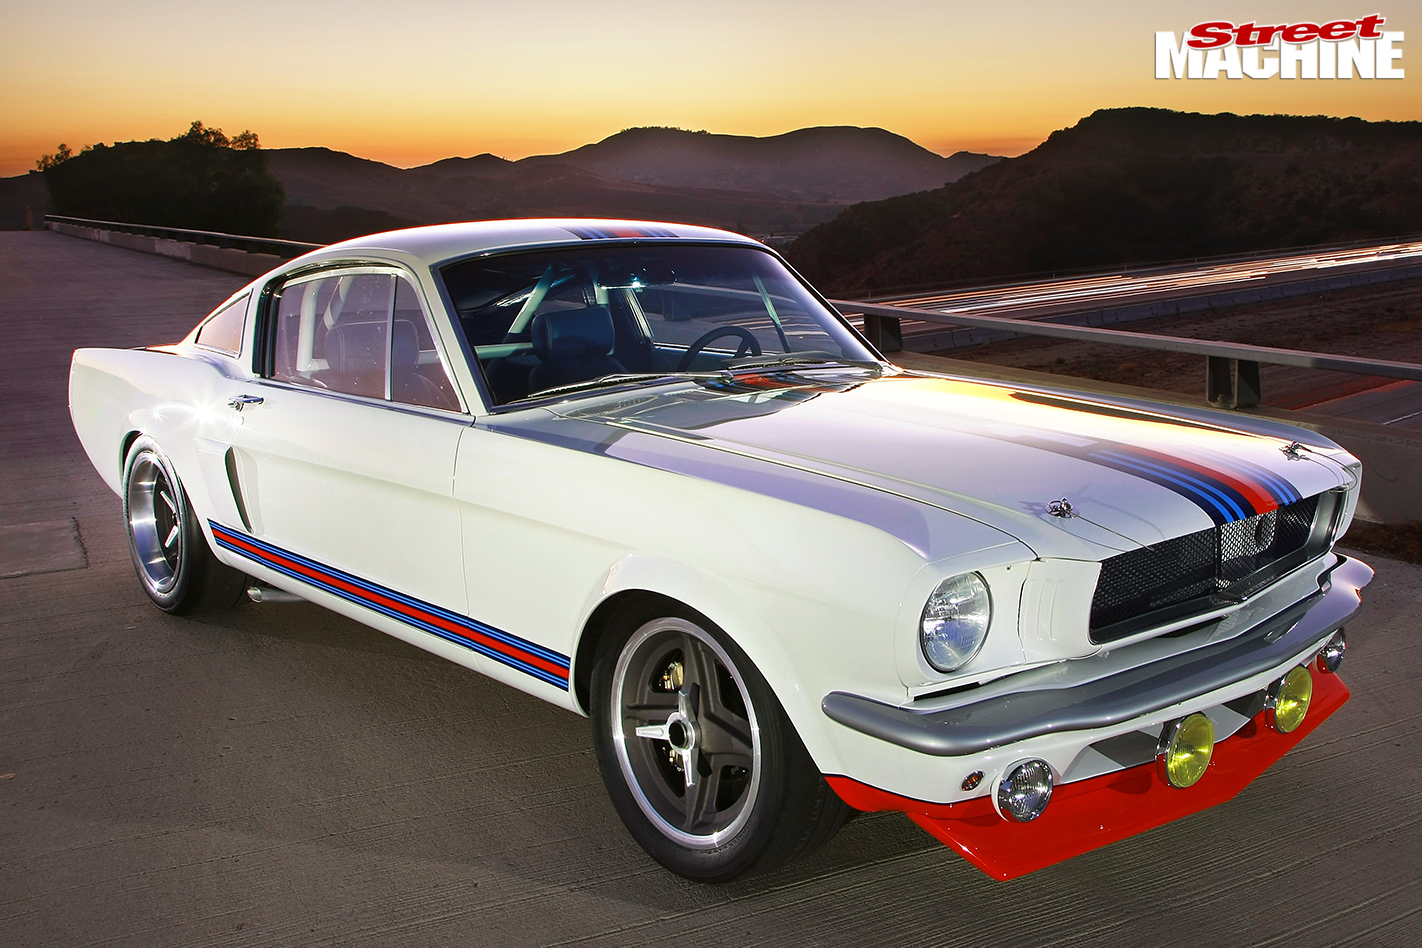 Ford Indy V8 Powered 1966 Mustang Built To Shelby R Model Spec